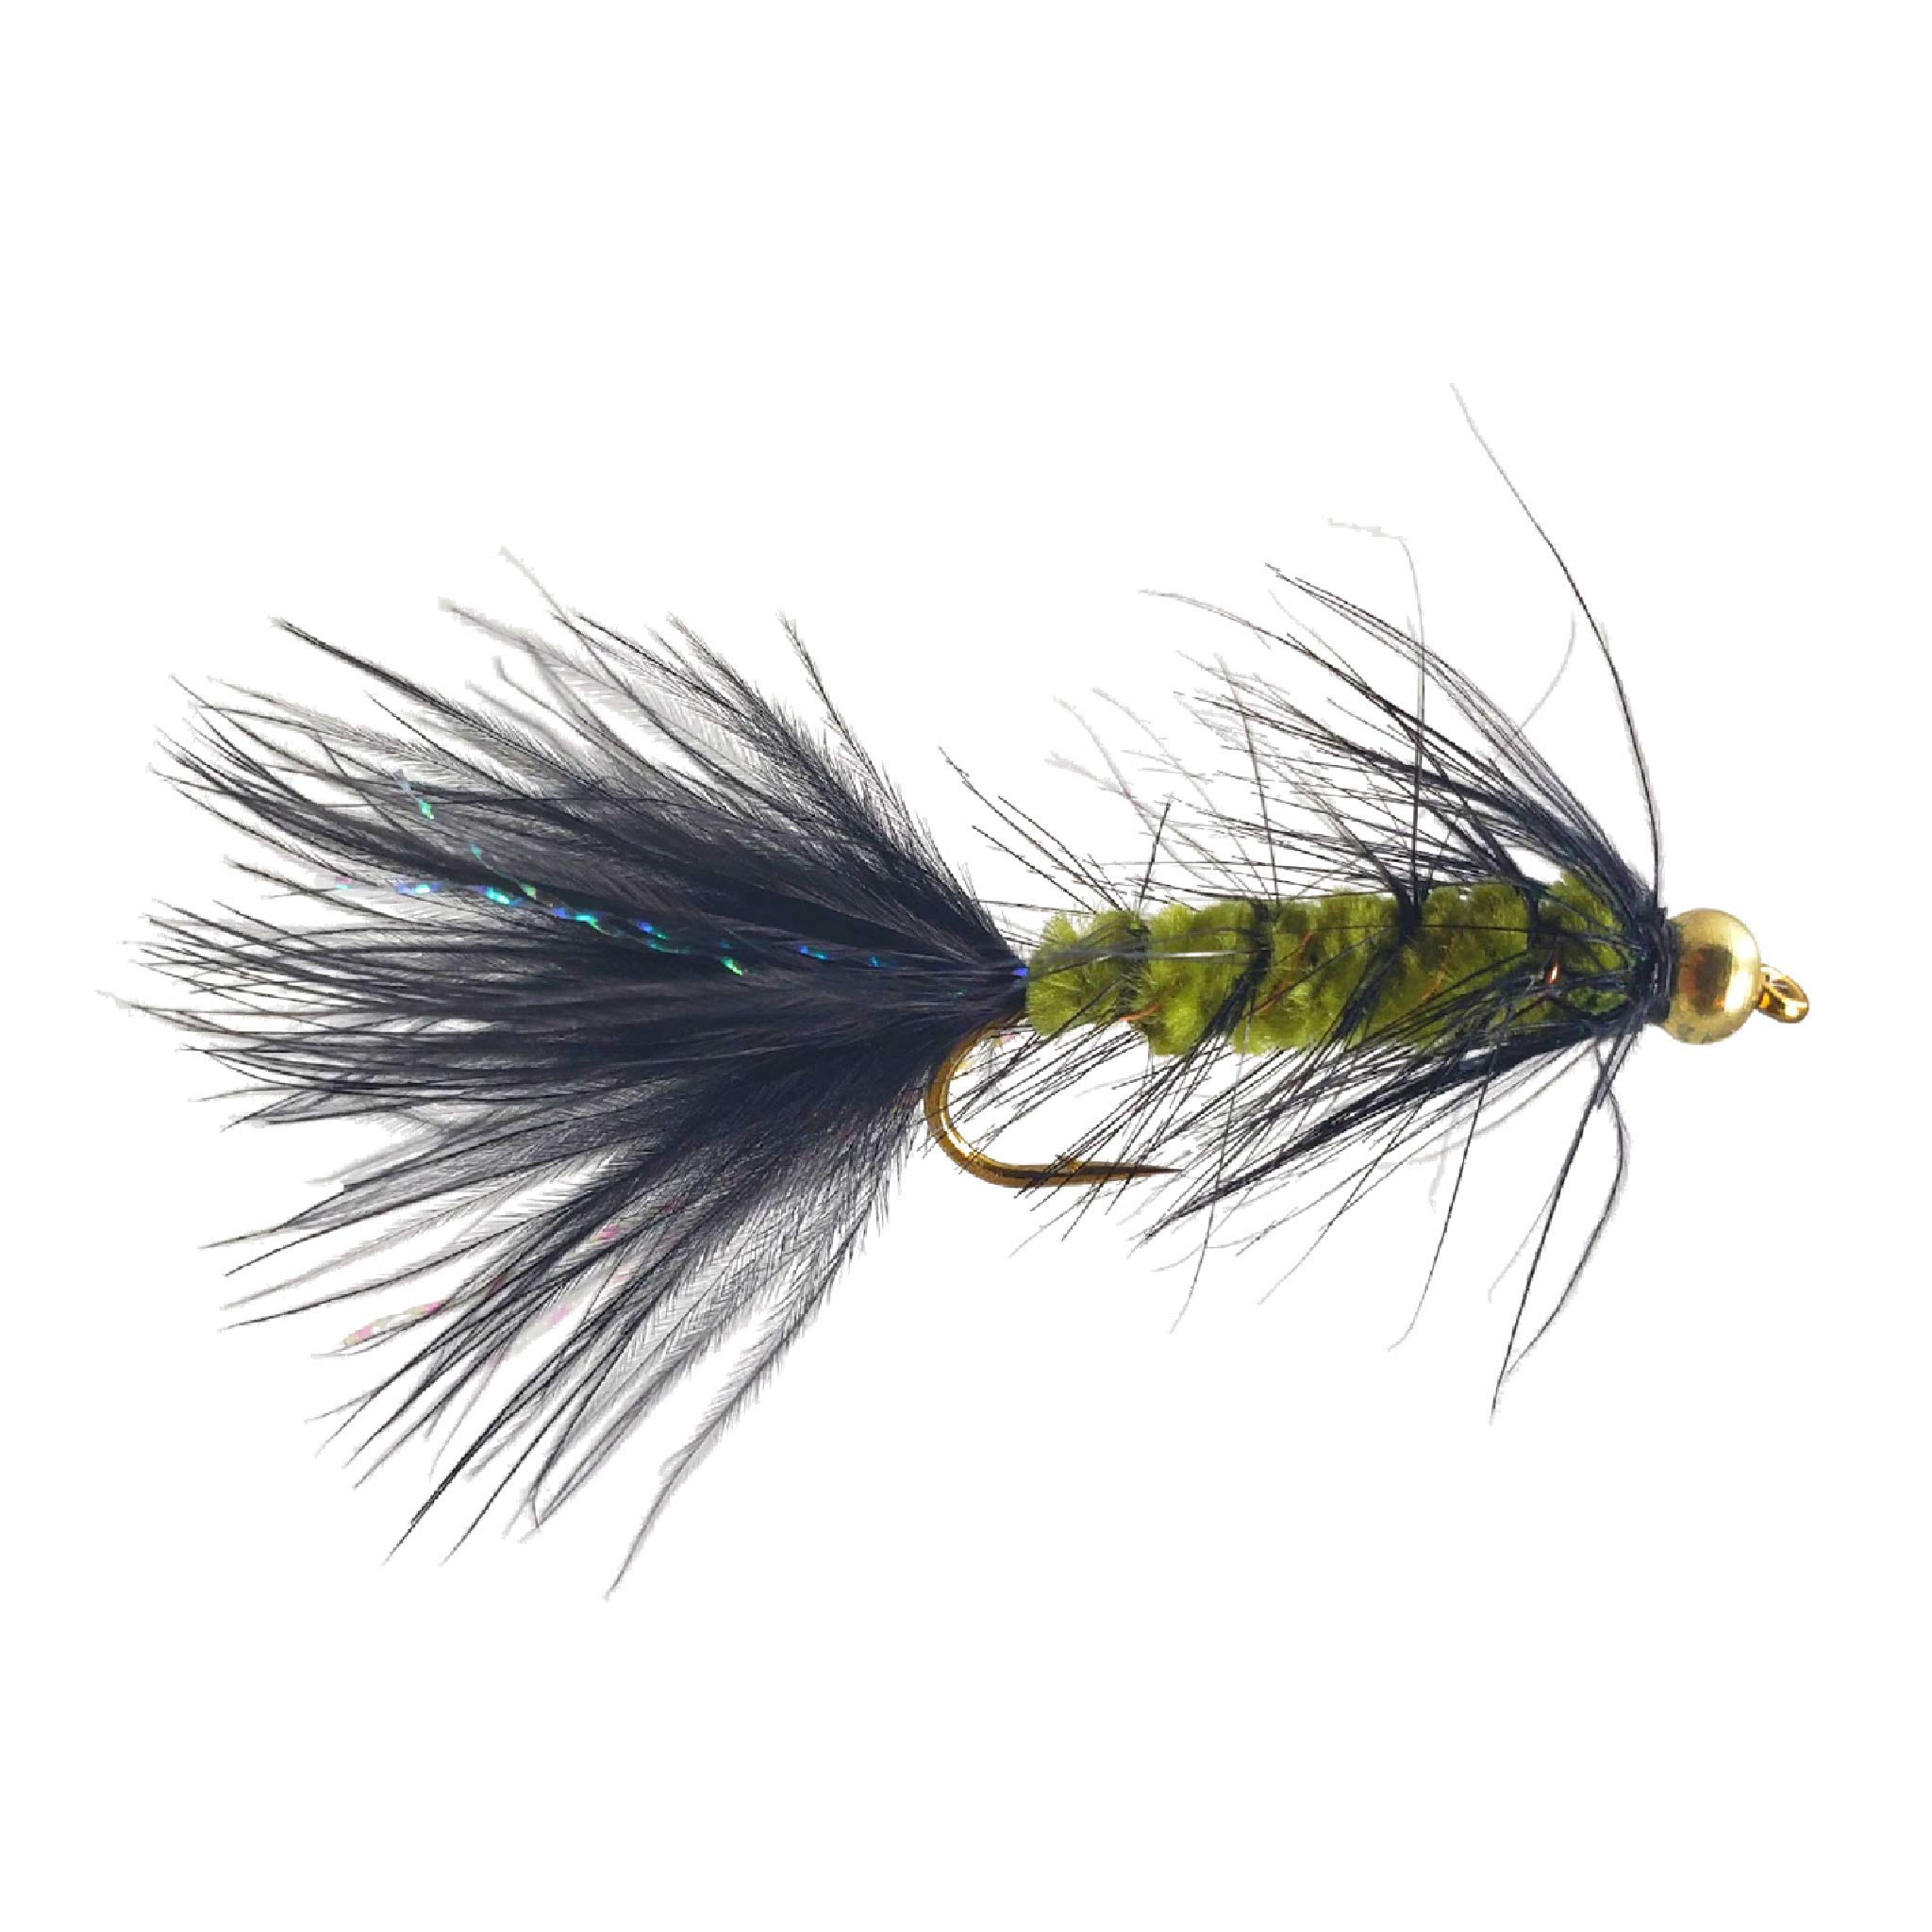 The Fly Crate Bead Head Woolly Bugger Fly Fishing Assortment for Trout Bass Panfish (Olive Black, Size #12 | 6 Pack) by The Fly Crate